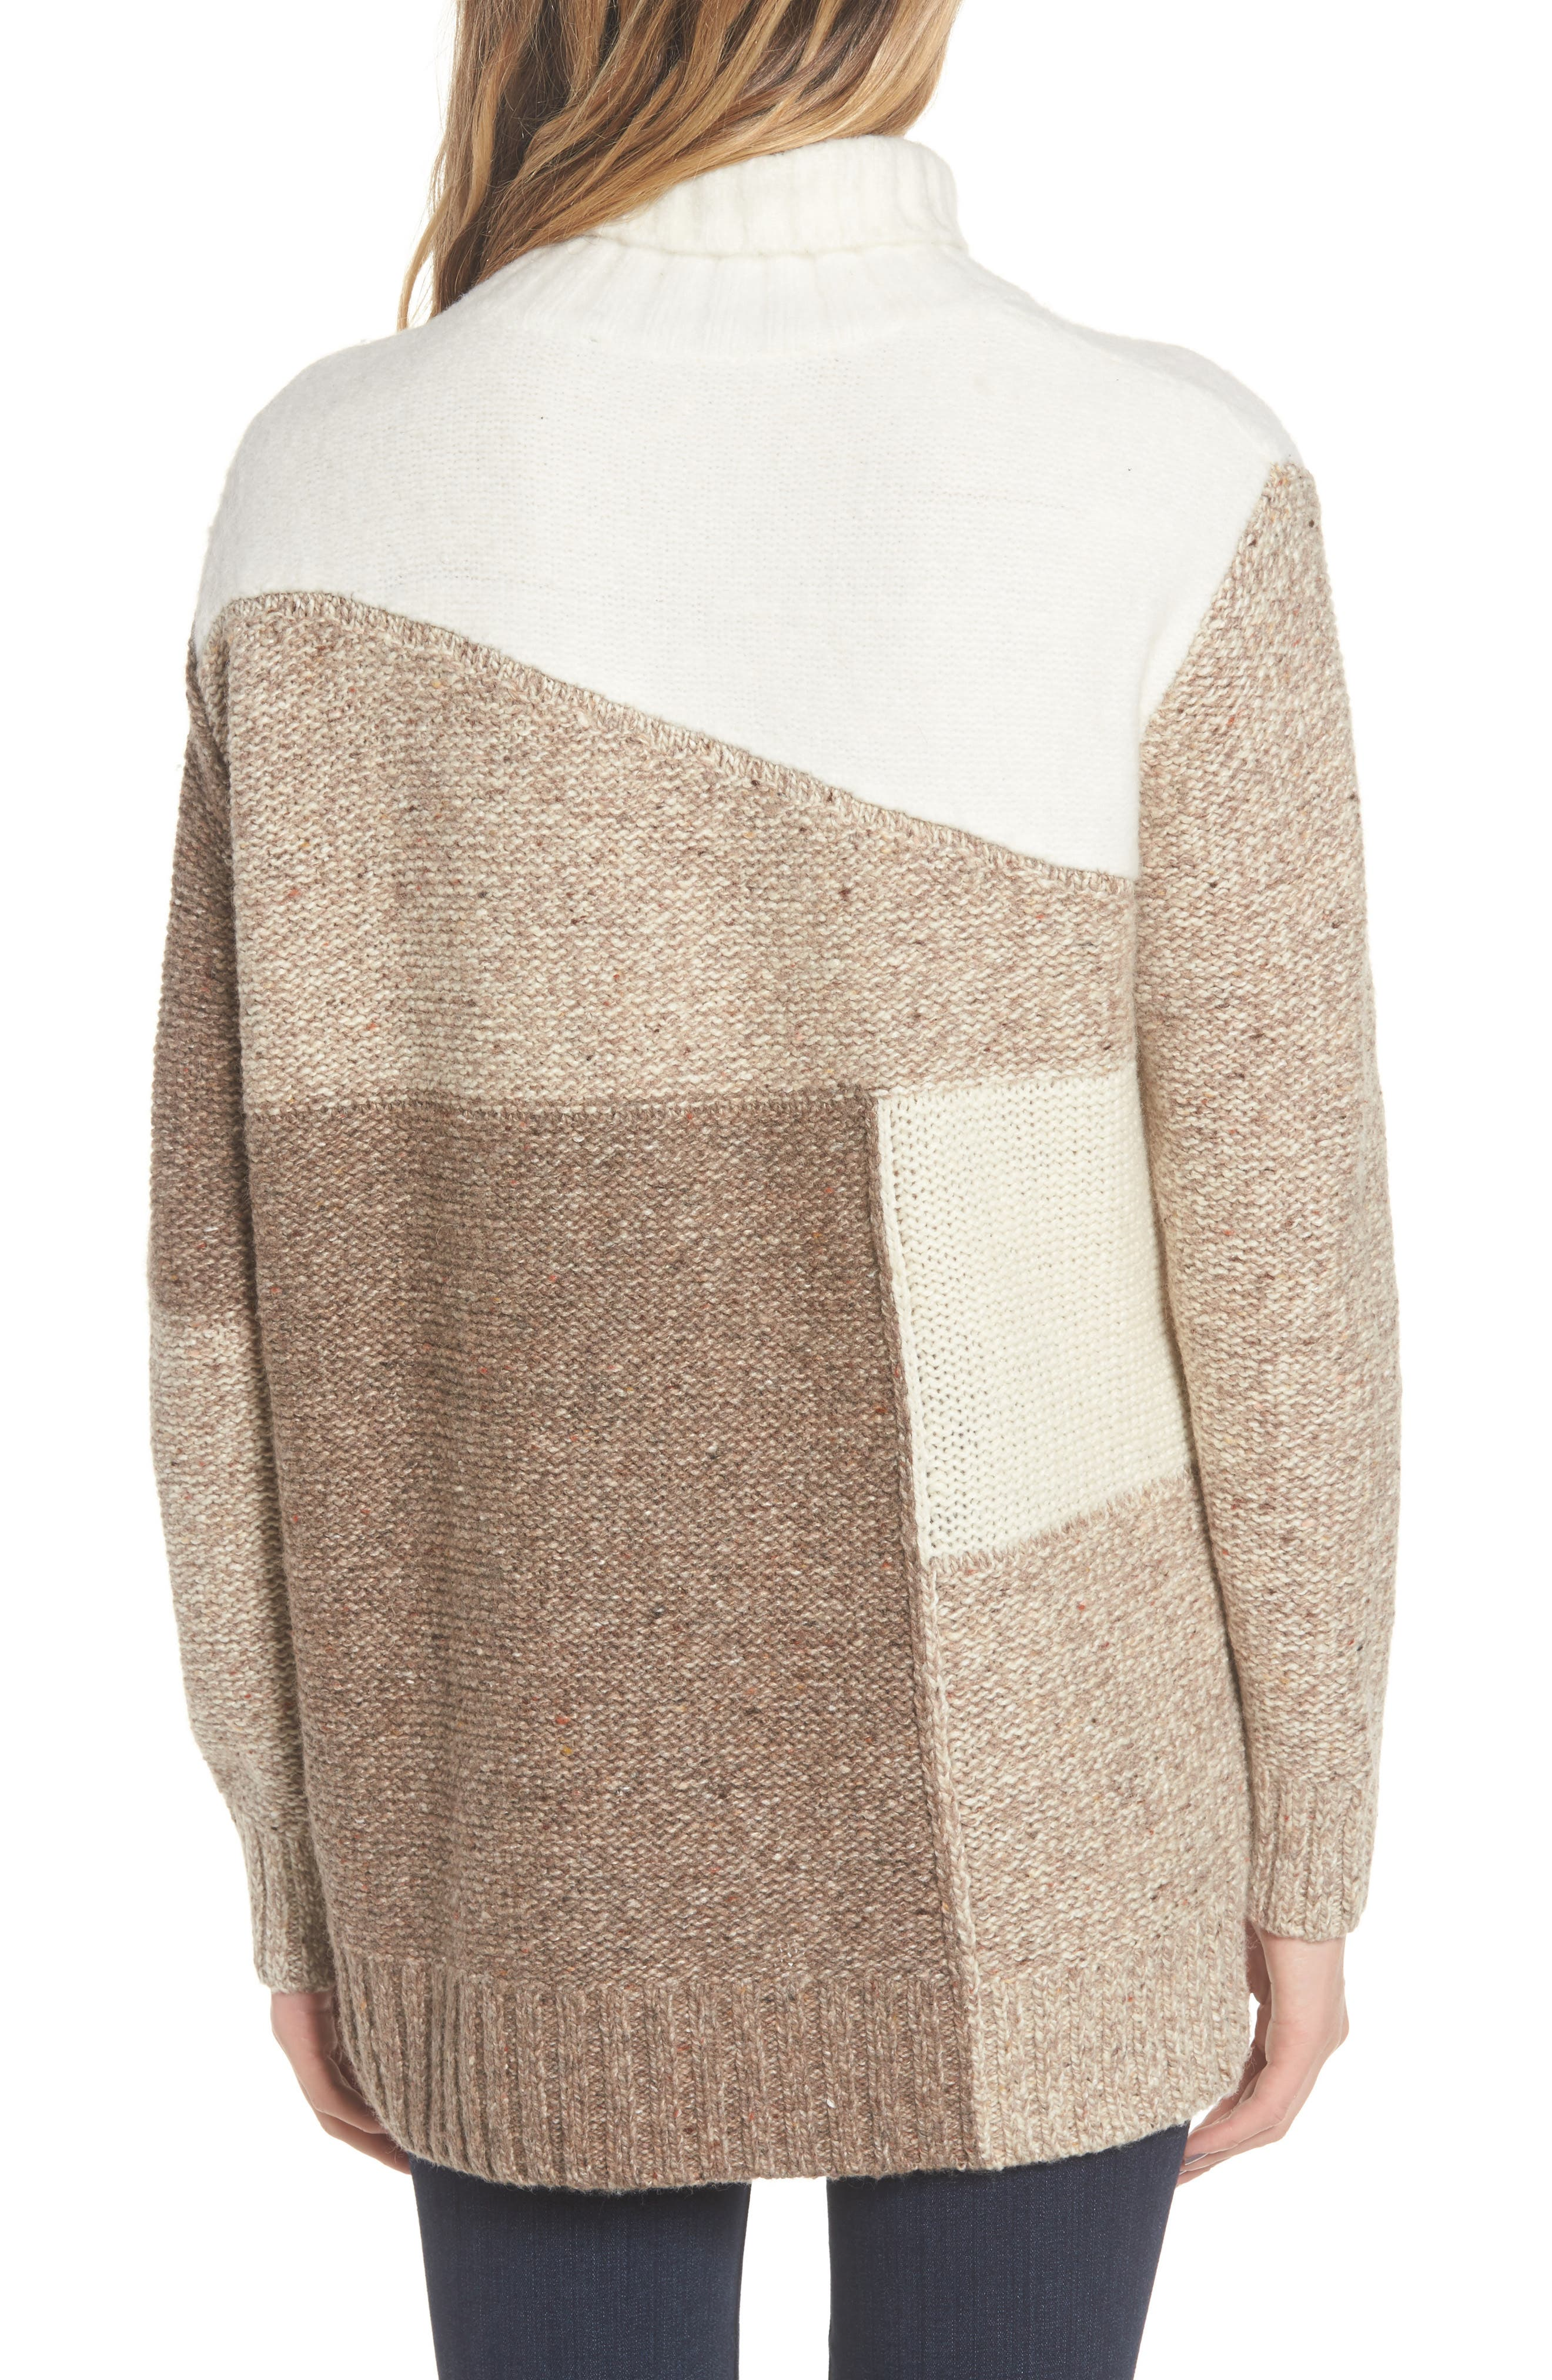 Anna Patchwork Turtleneck,                             Alternate thumbnail 2, color,                             Winter White